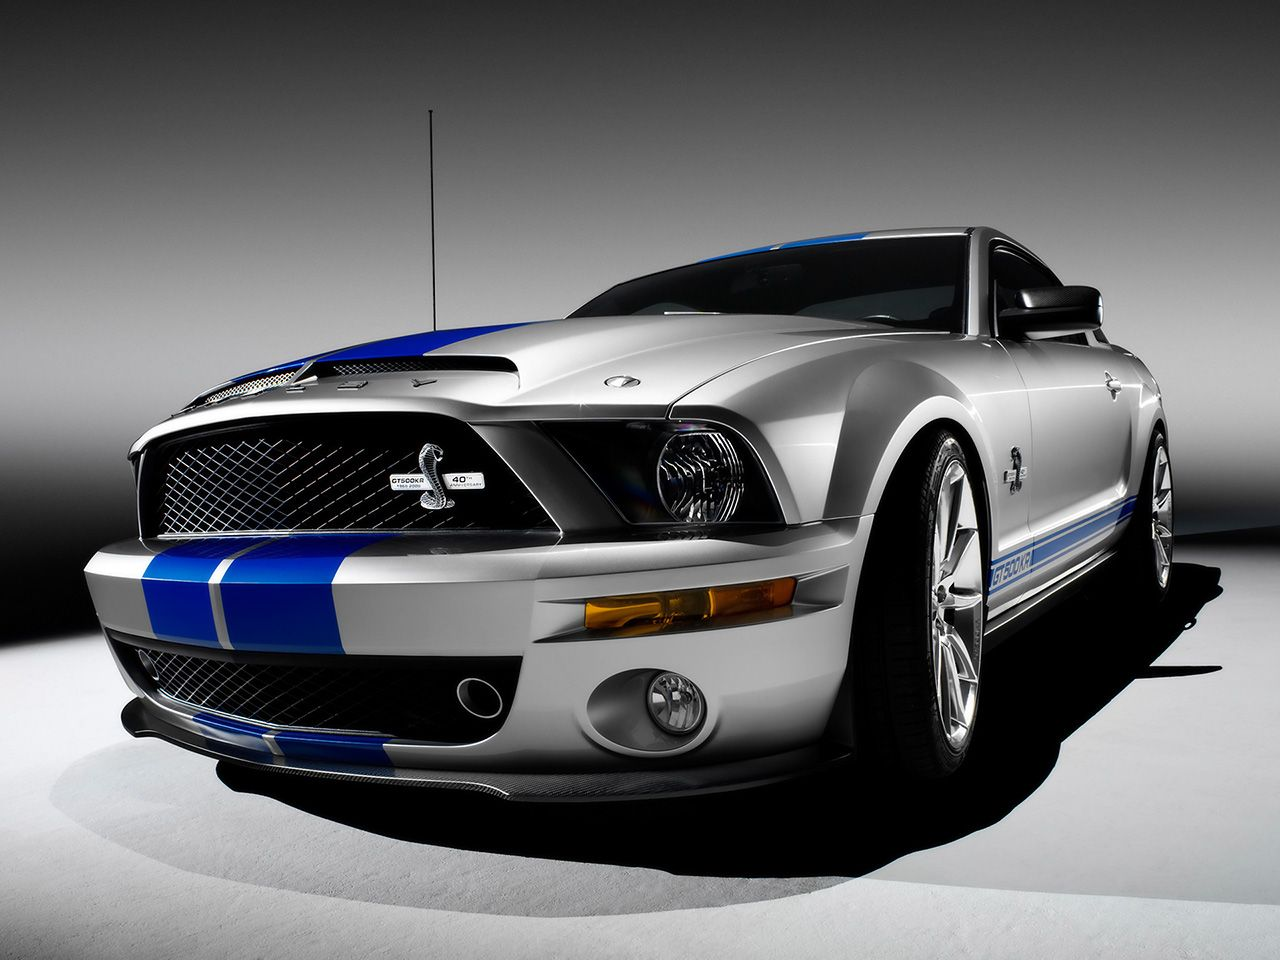 Zero To Sixty Ford Mustang Shelby Mustang Shelby Cobra Ford Mustang